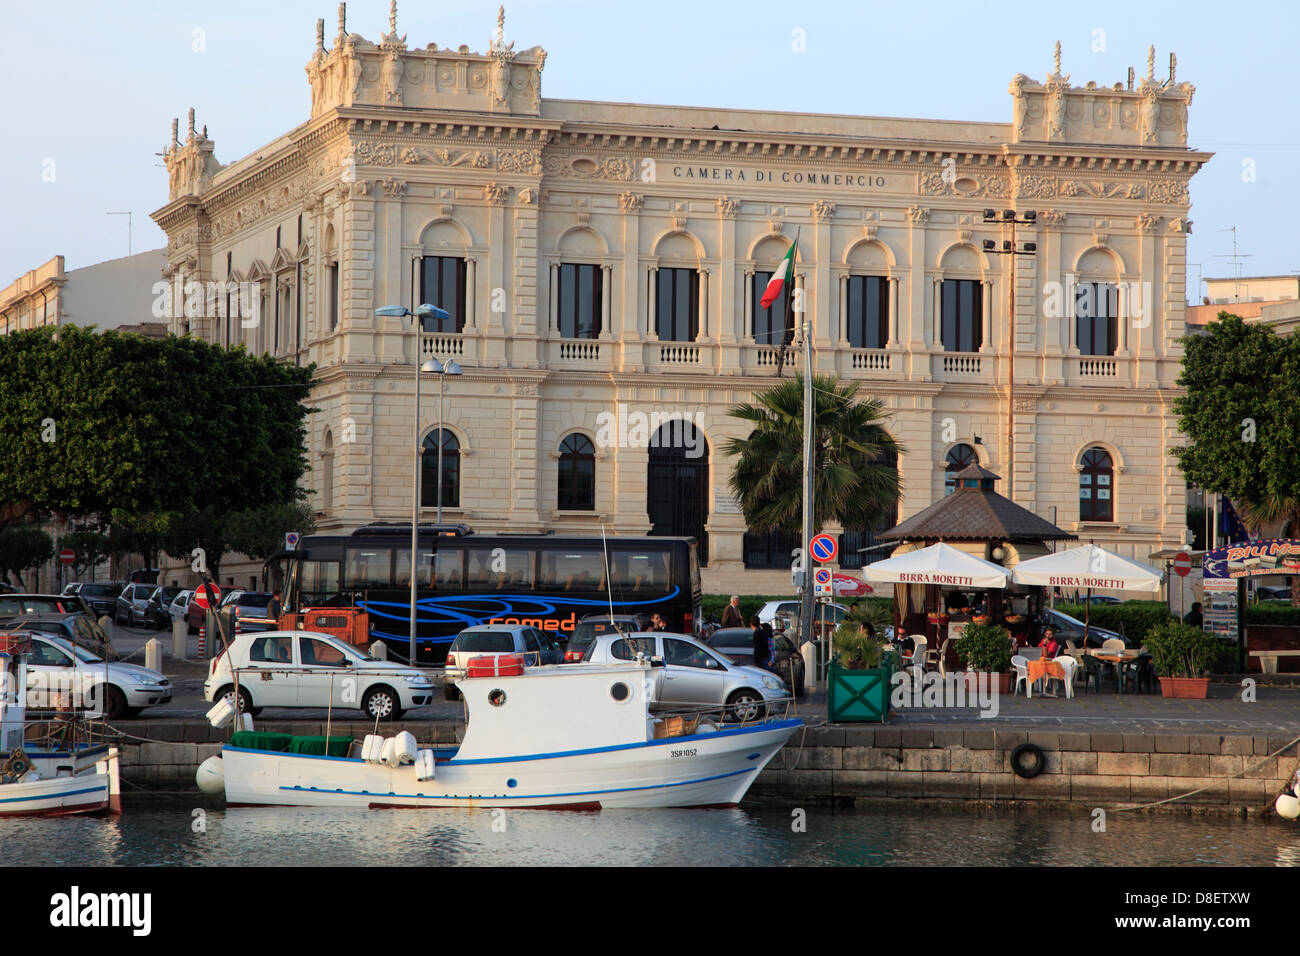 Italy, Sicily, Siracusa, Chamber of Commerce, - Stock Image